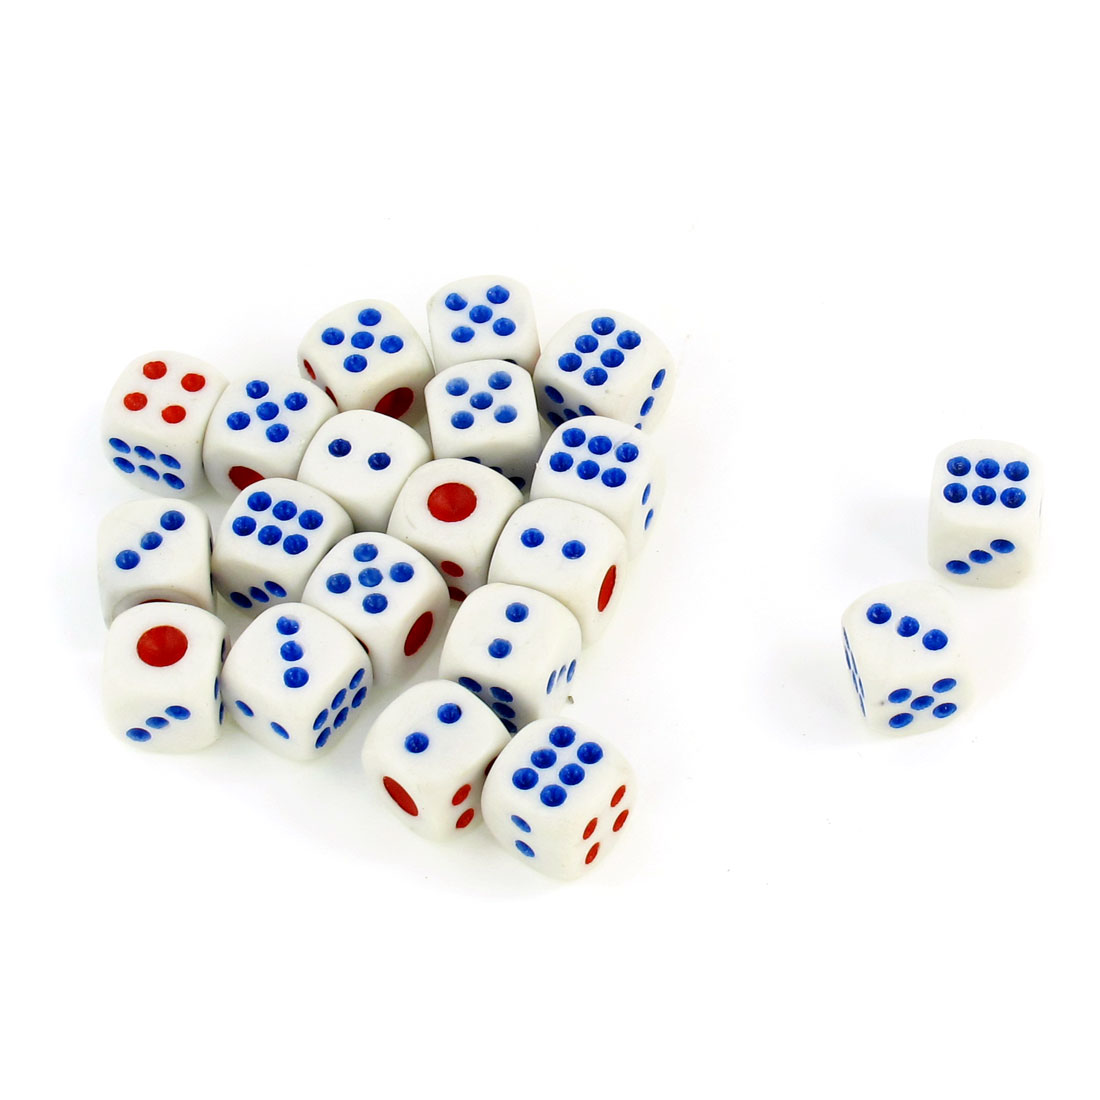 20 Pcs White Entertainment Guessing Game Cubical Red Blue Dot Dices Toy